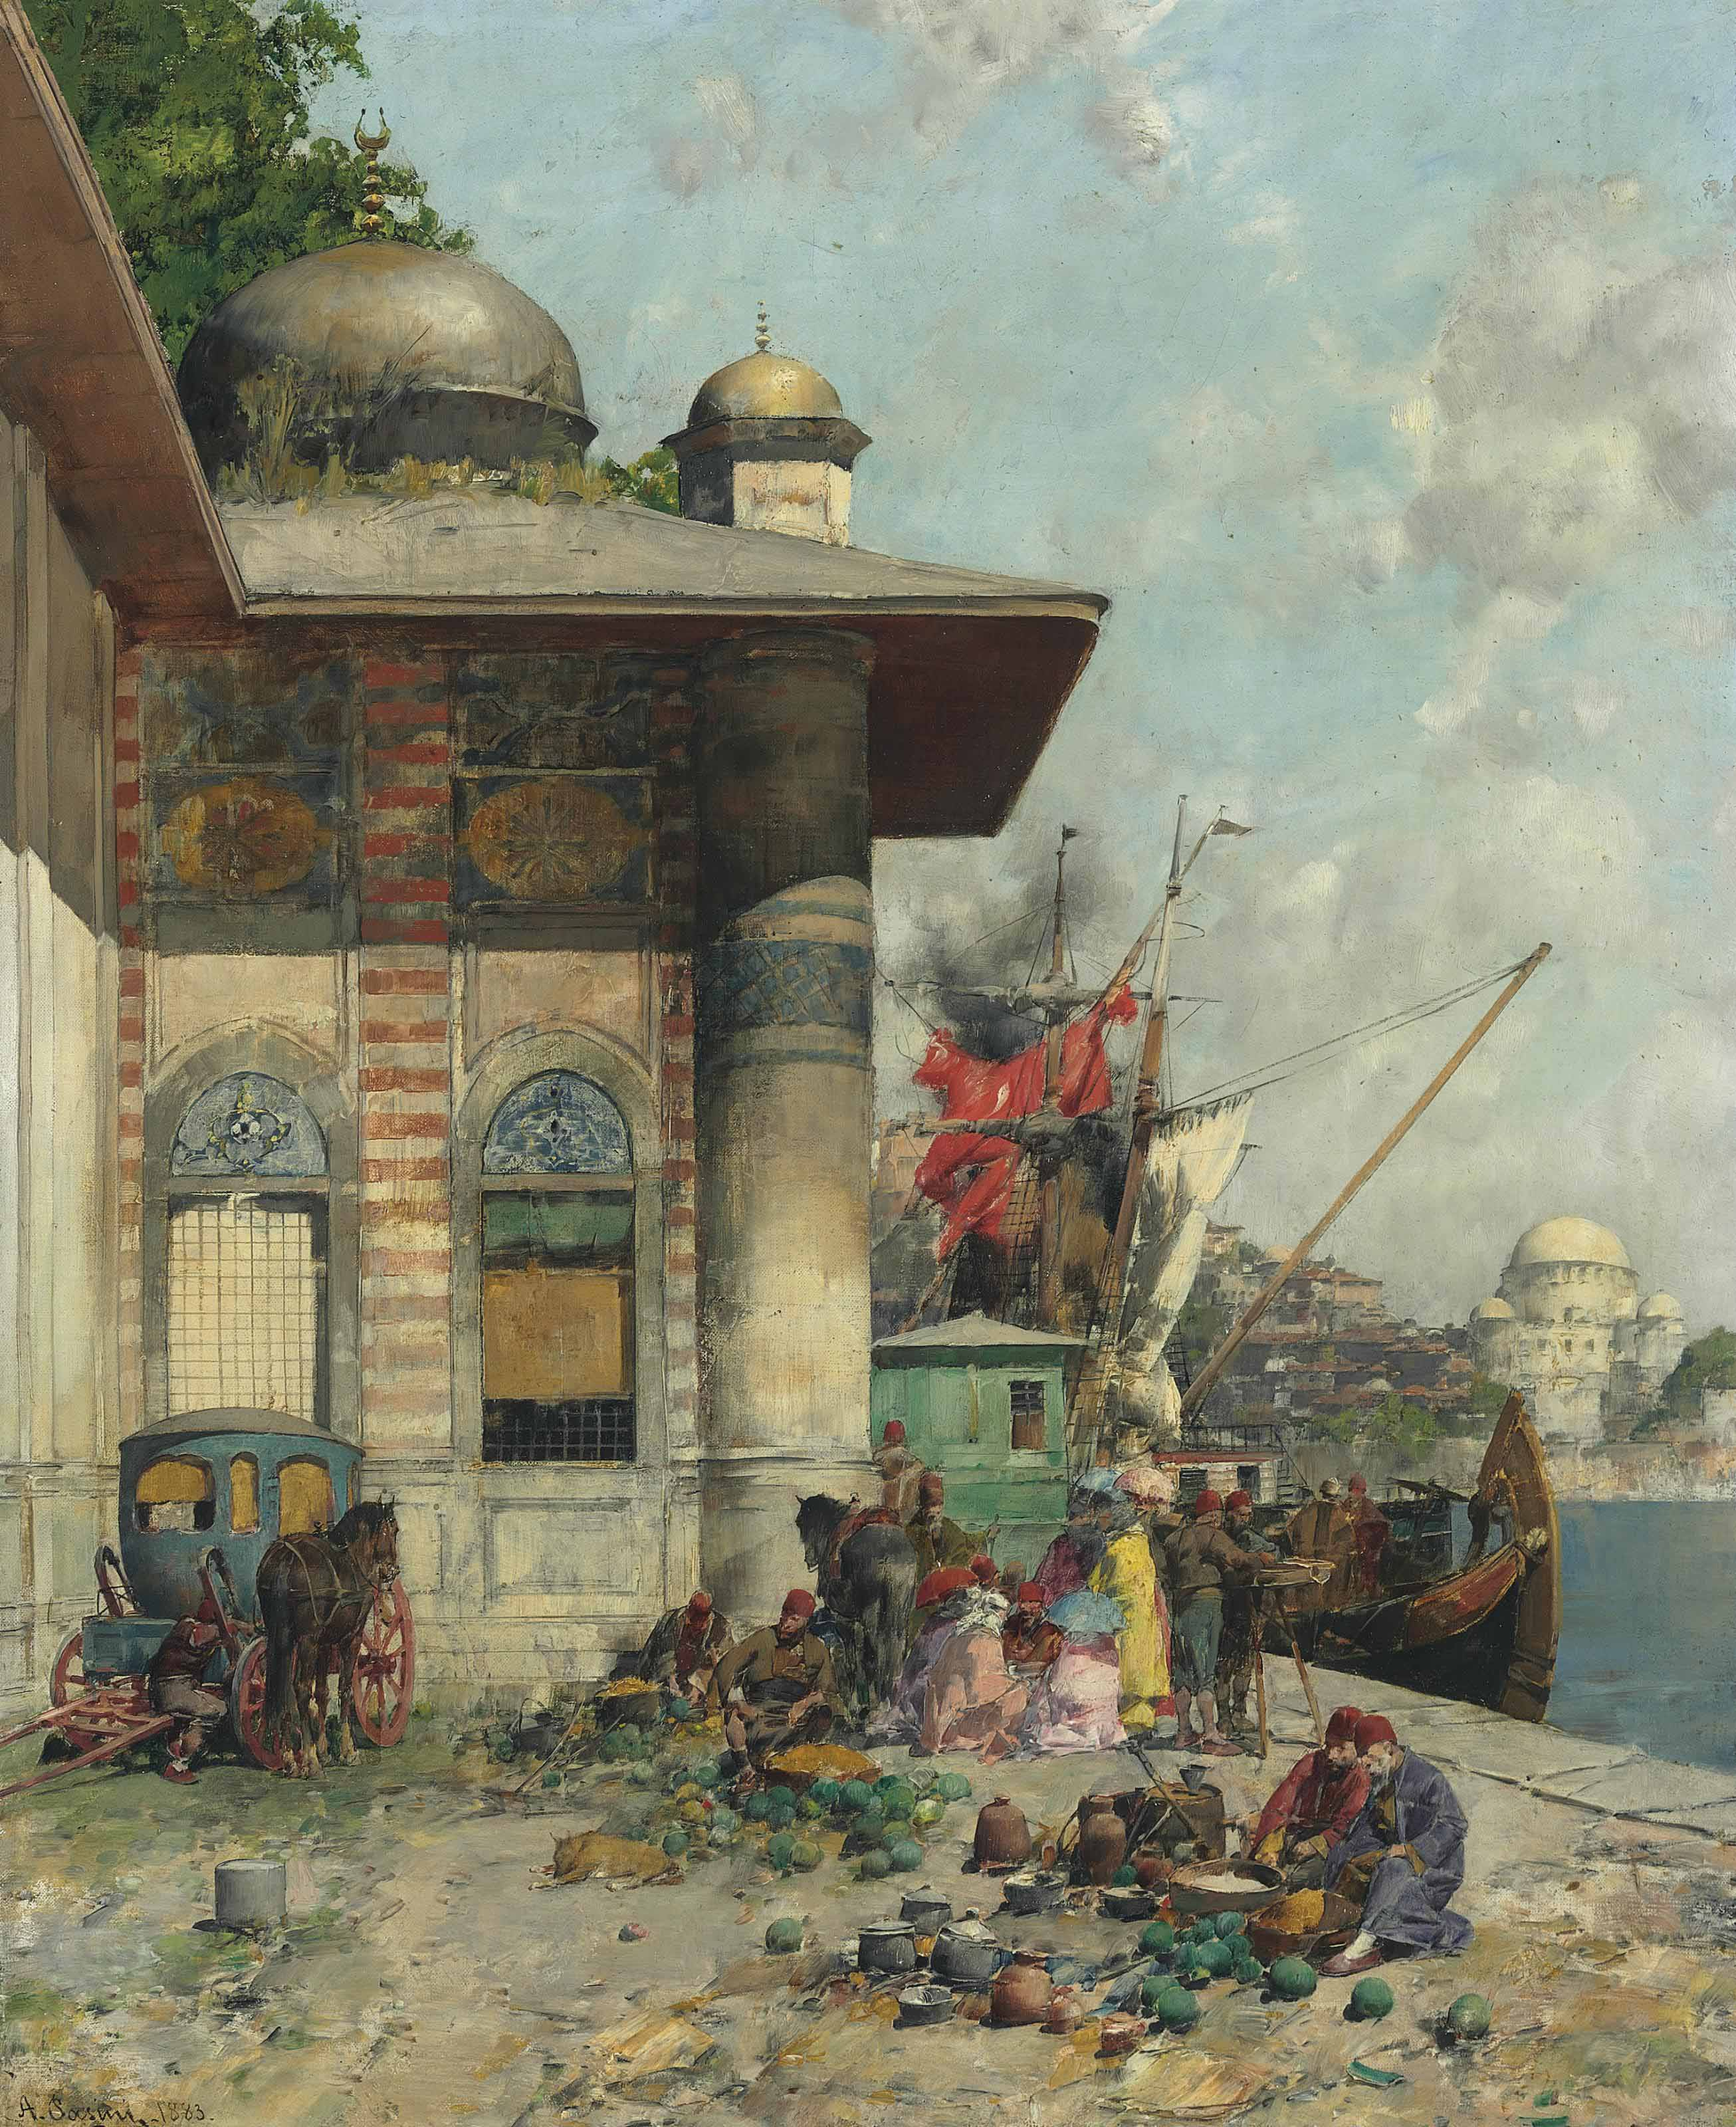 Market day, a capriccio of the Old City Shores, Constantinople